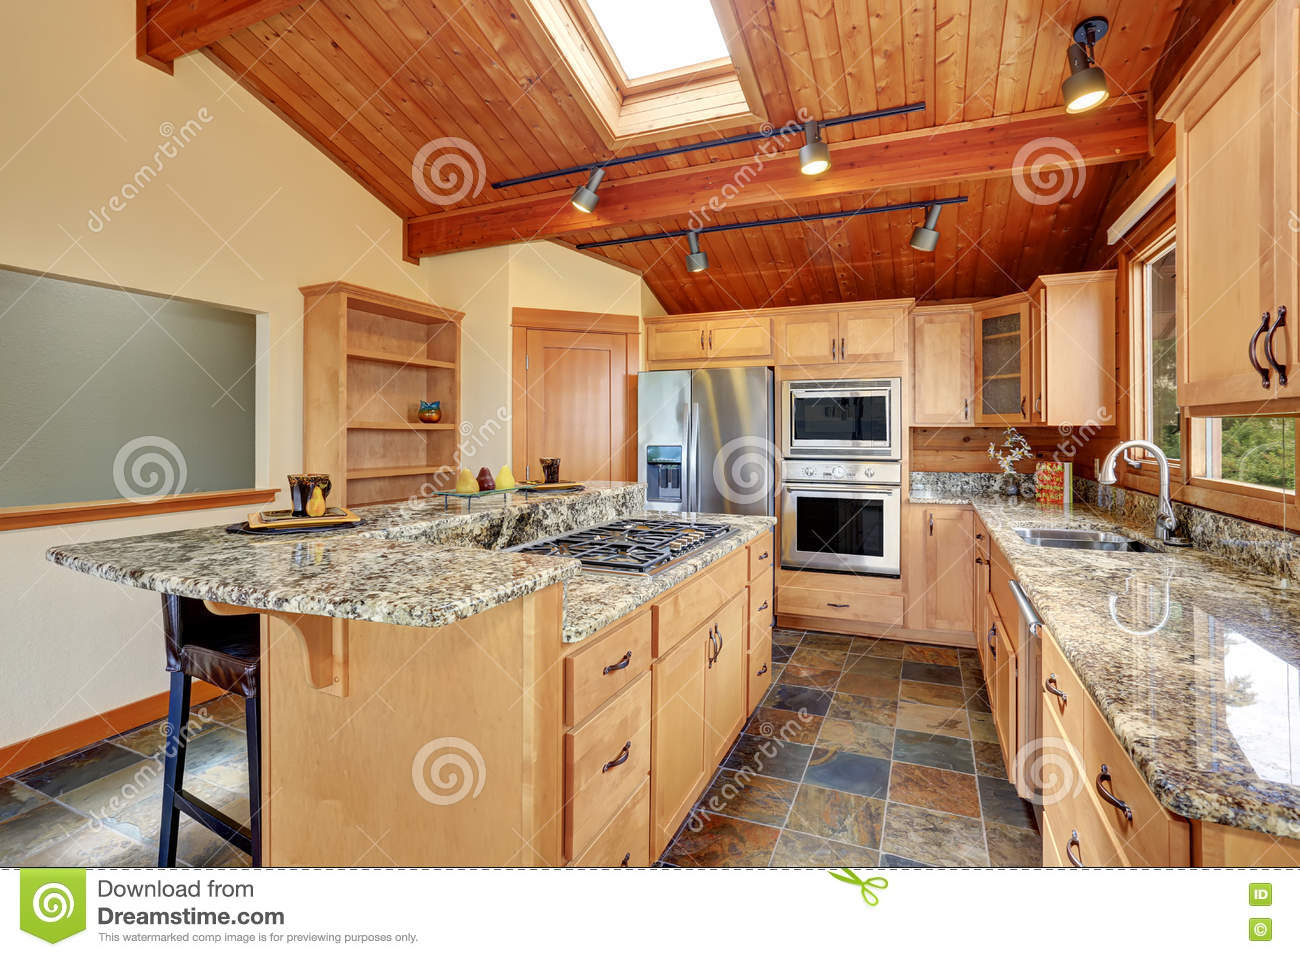 Download Wooden Trim Home With Open Floor Plan. Kitchen With Granite Counter Top. Stock Image - Image of home, furnished: 77303609